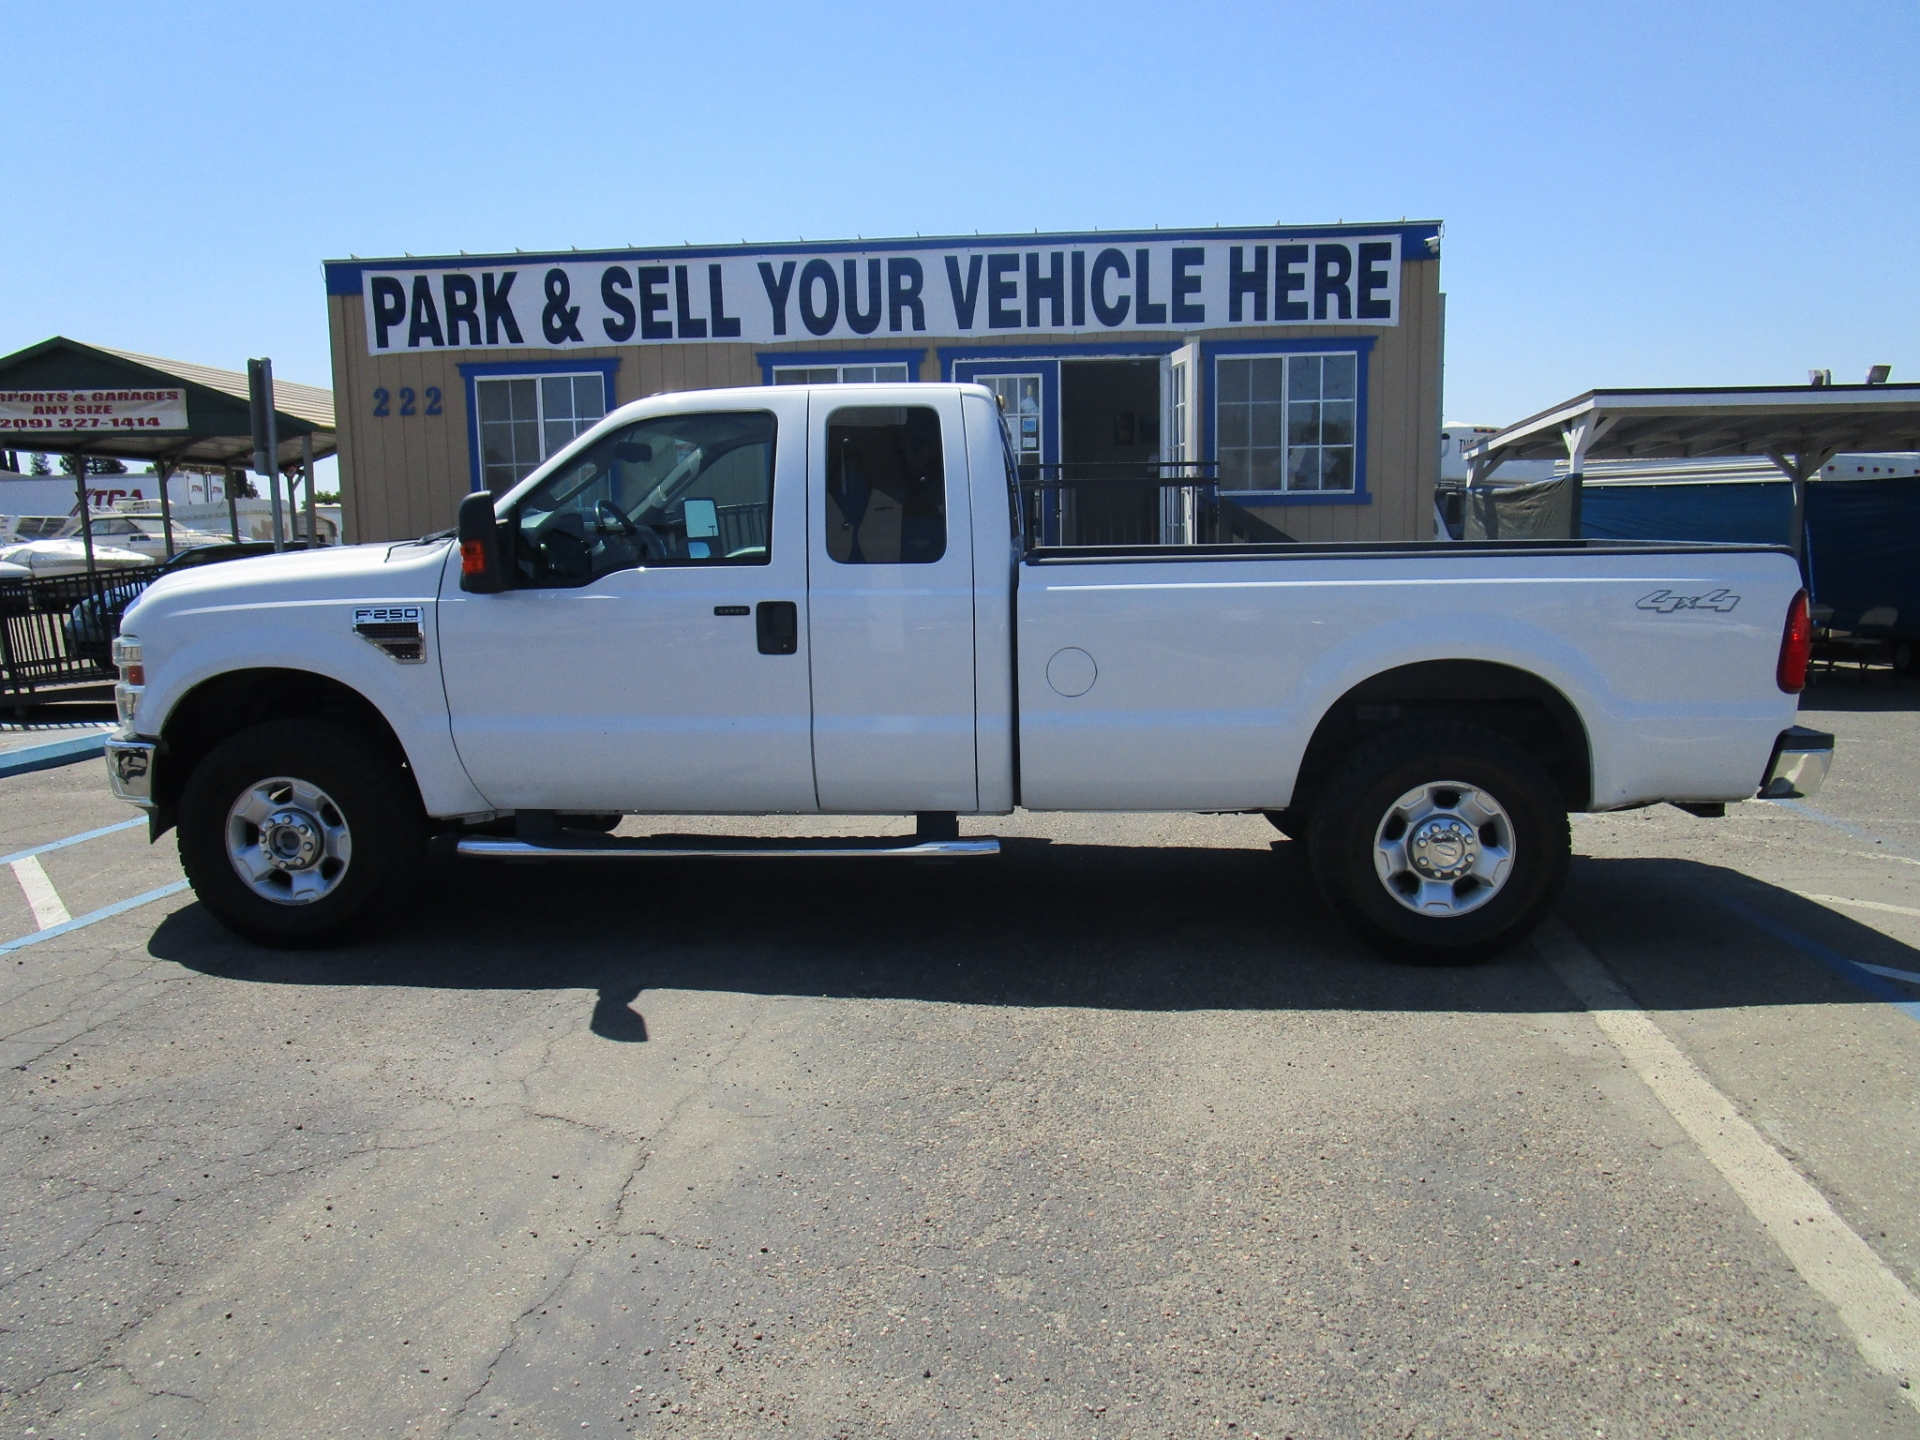 Ford F-250 Super Duty 4x4 Crew Cab Diesel 2010